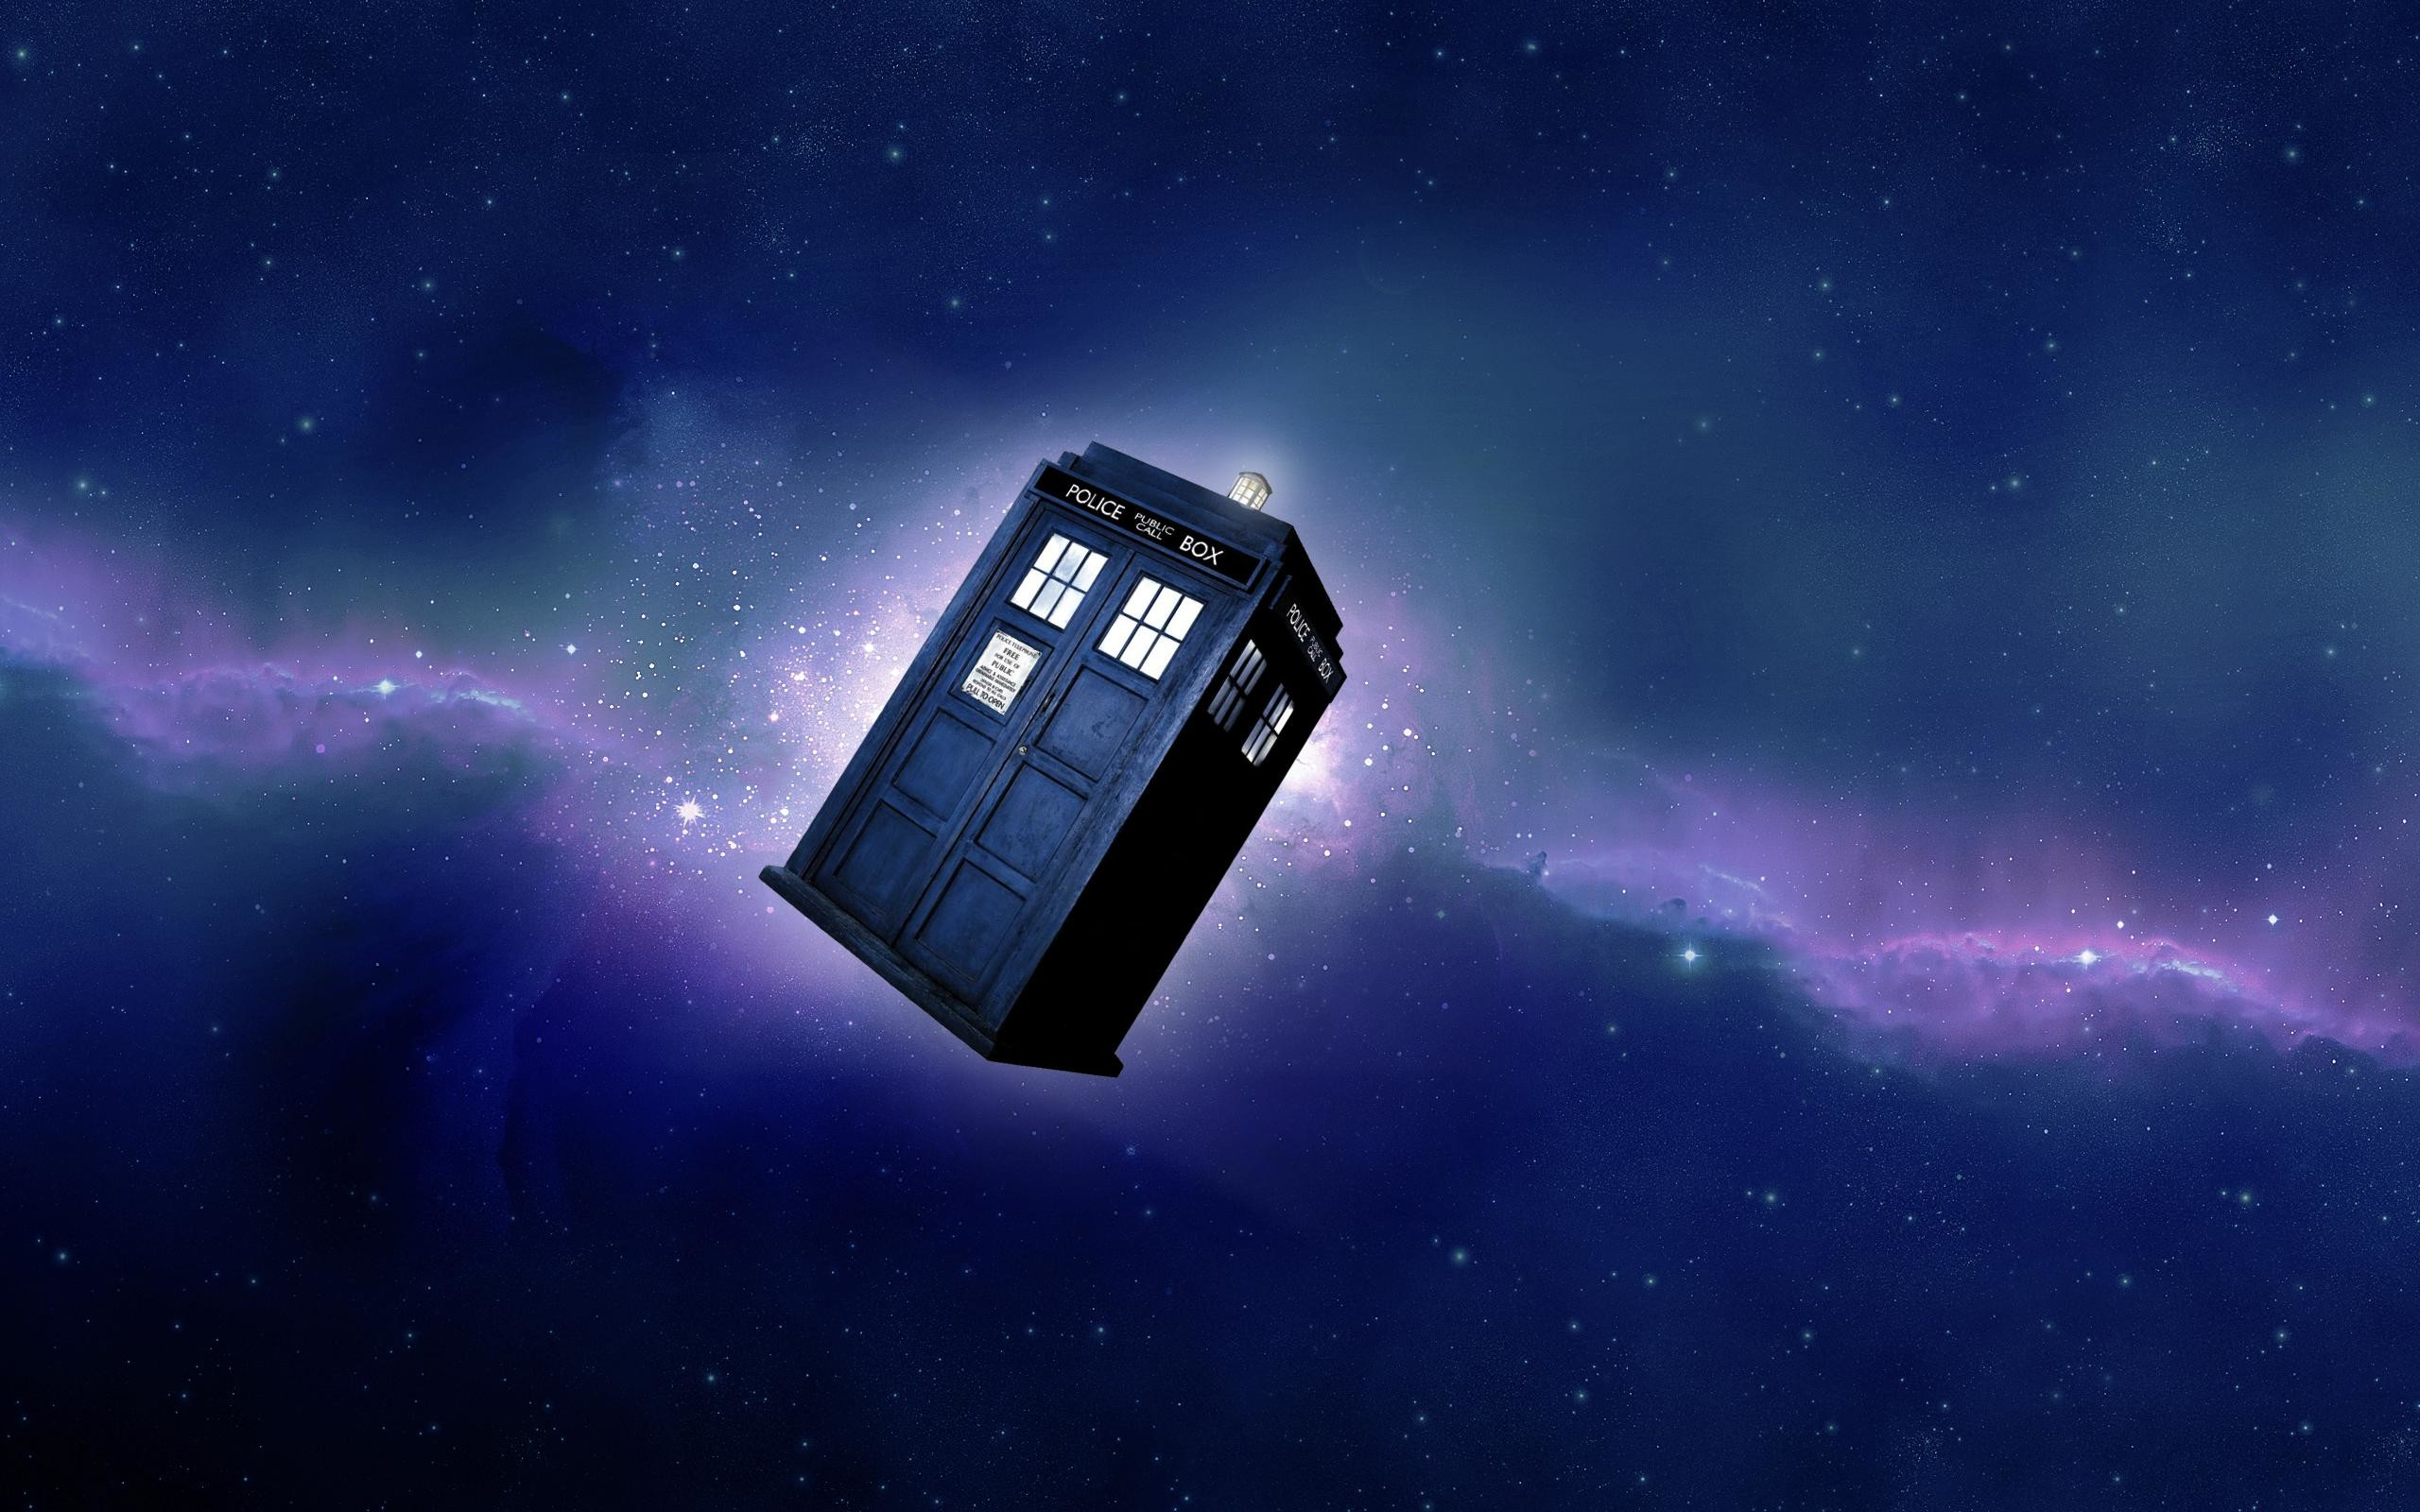 Doctor Who All Doctors Wallpaper (68+ Images